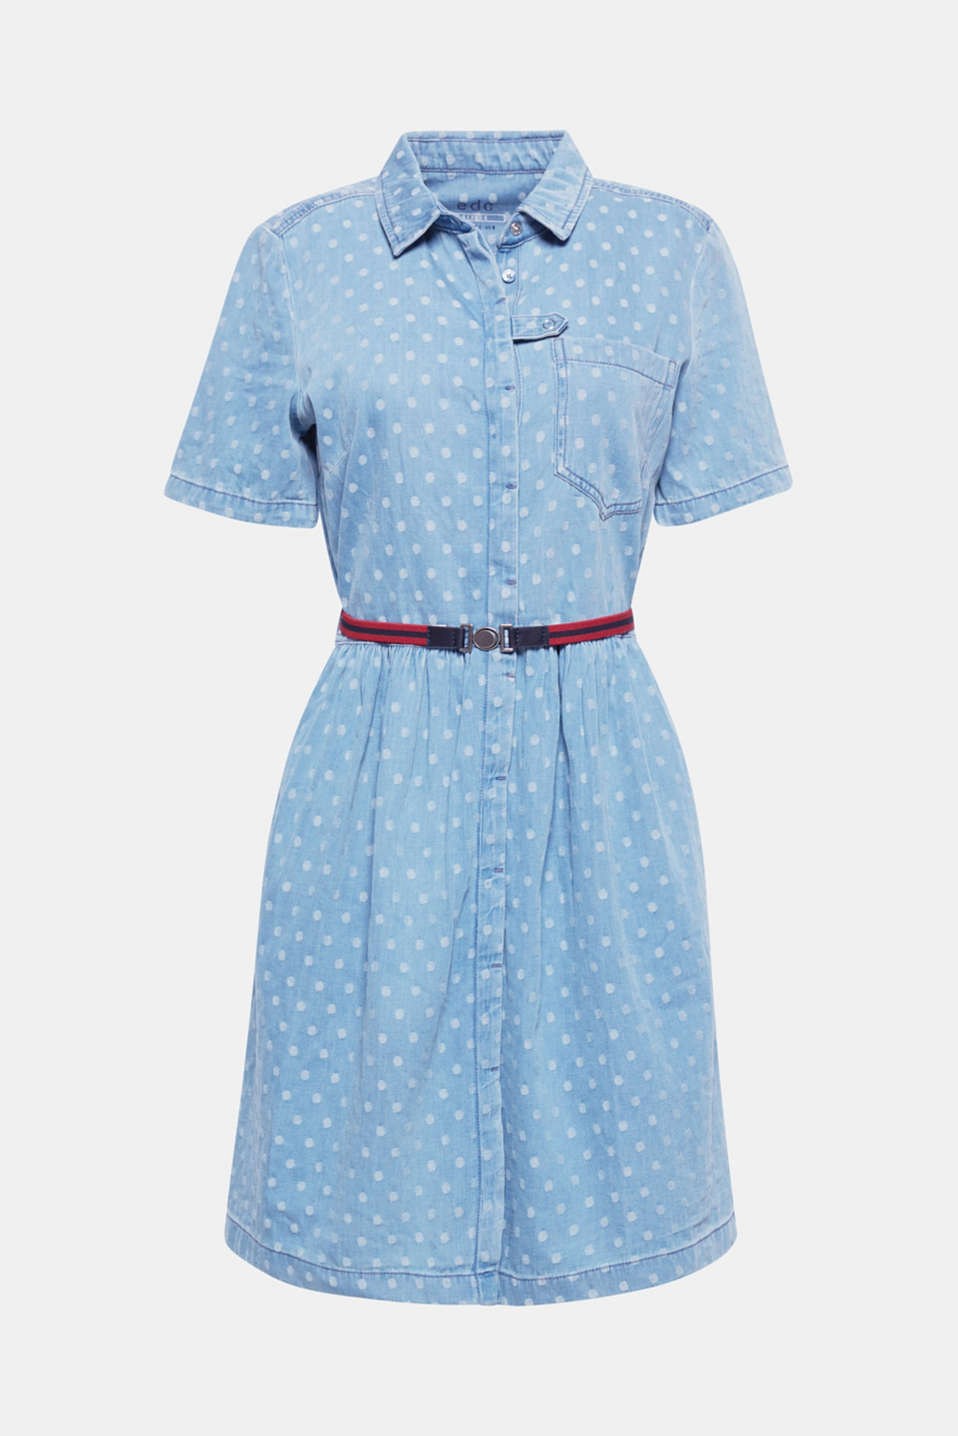 The charming, woven polka dots and flared silhouette featuring a waist-enhancing belt give this casually washed denim dress a feminine twist.